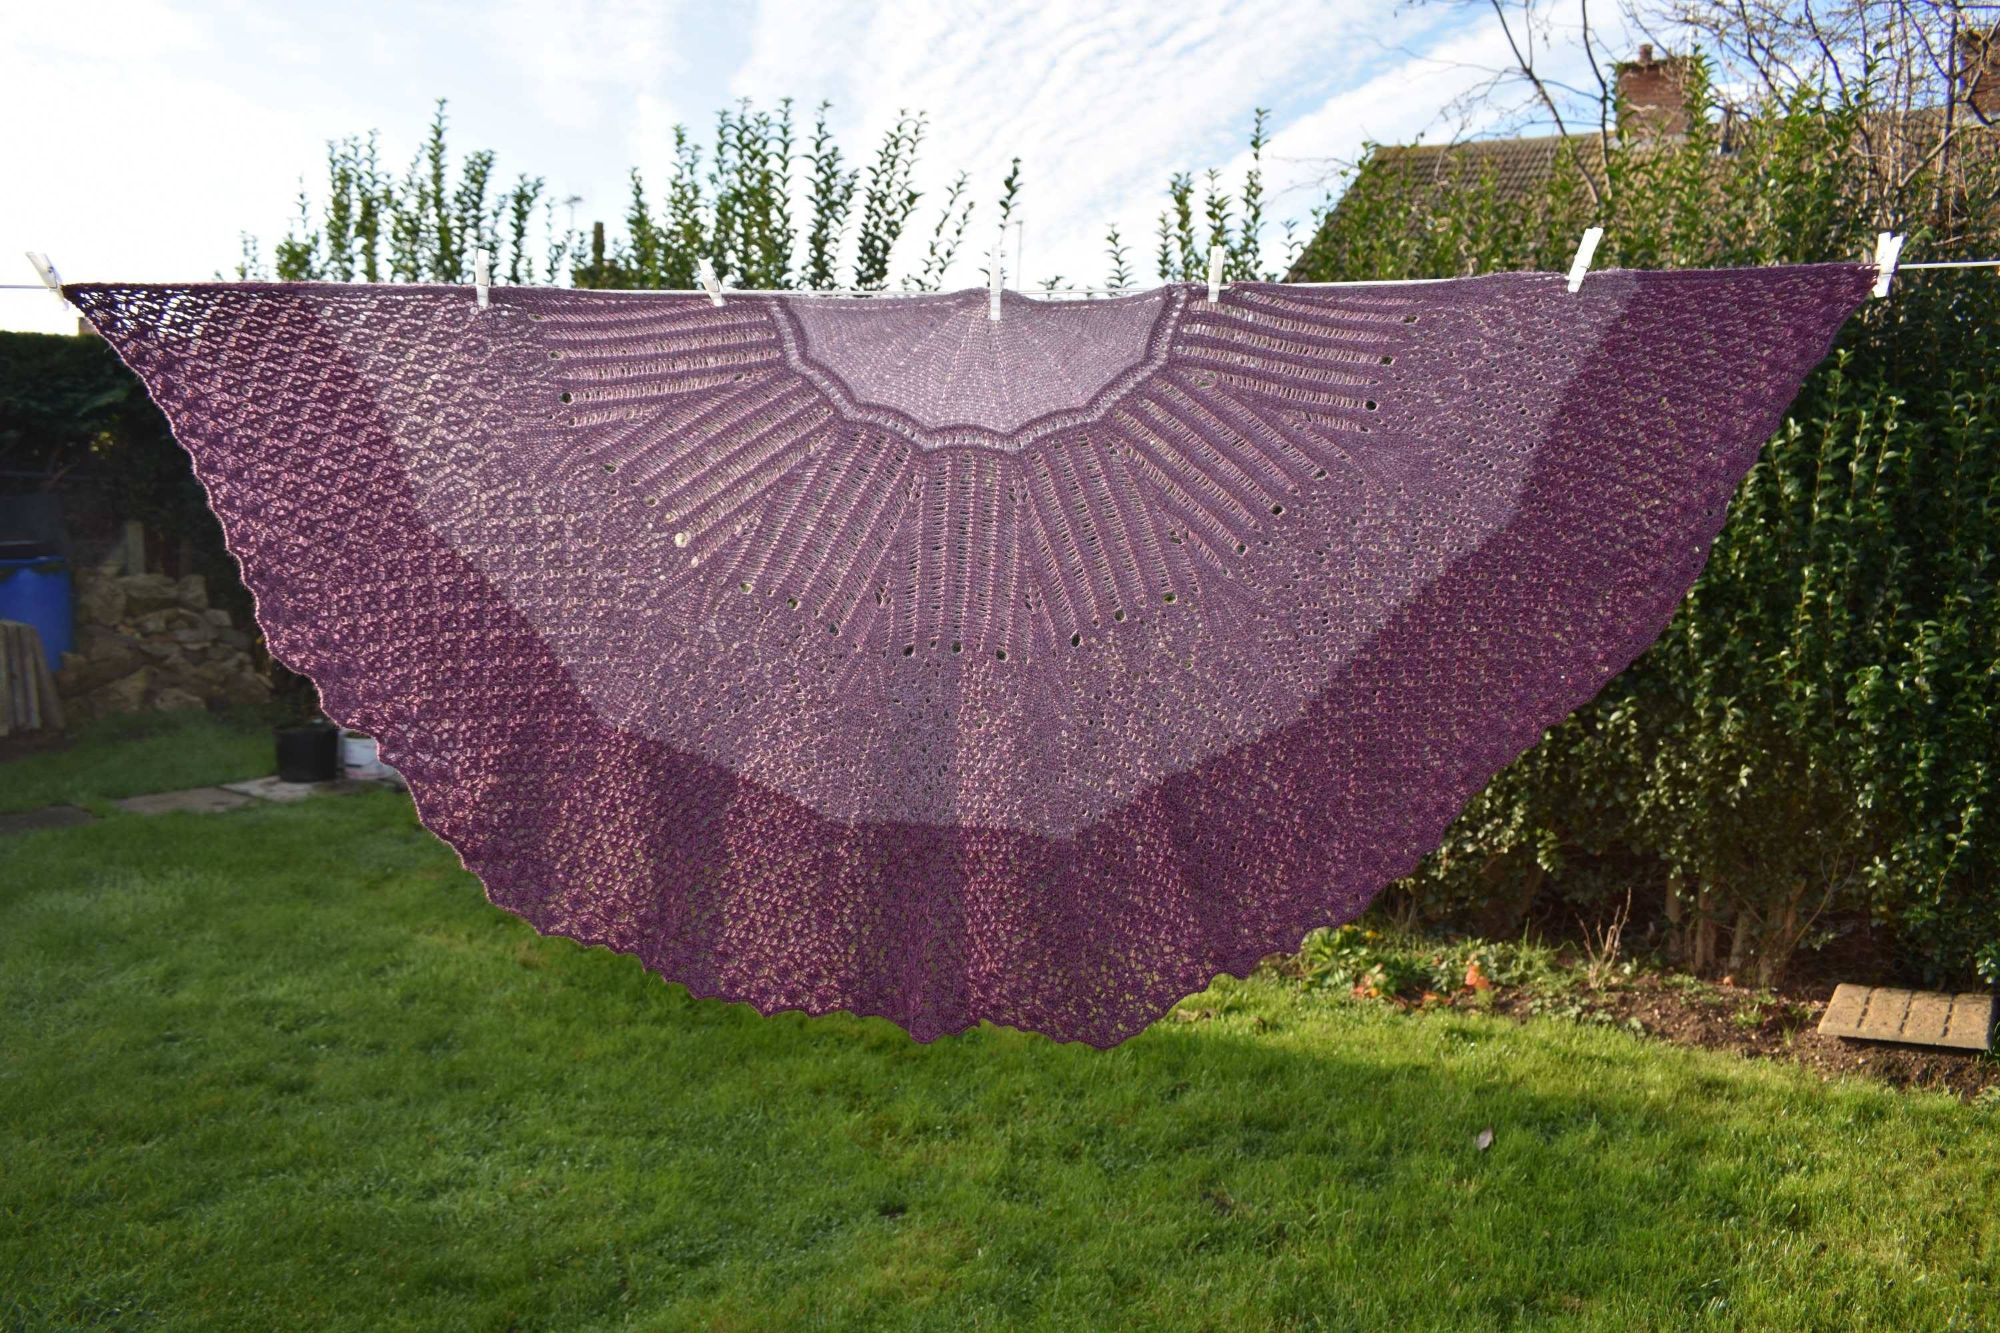 Age of Wonder shawl, hanging on a washing line, spread out, knit in different shades of purple